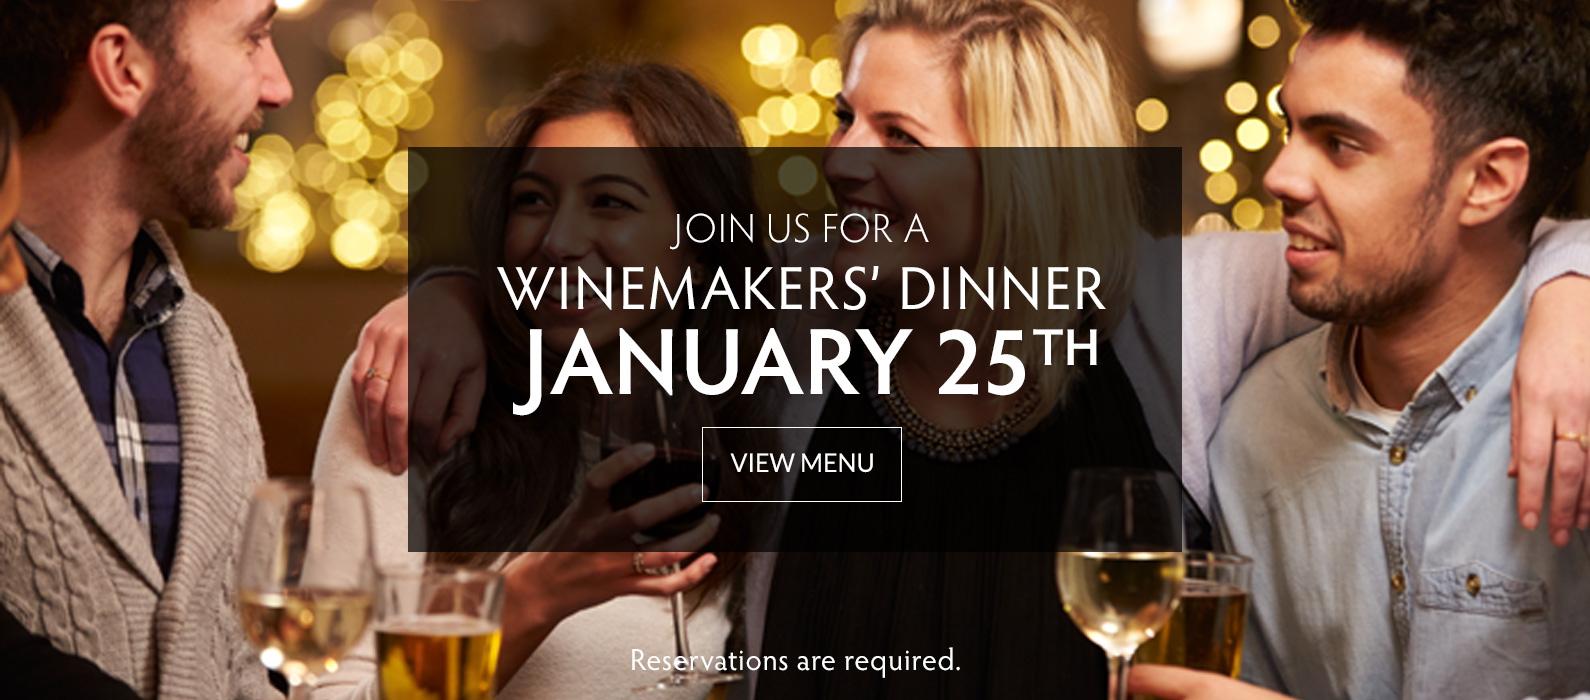 Winemakers' Dinner - January 25 at Copper Door Restaurant